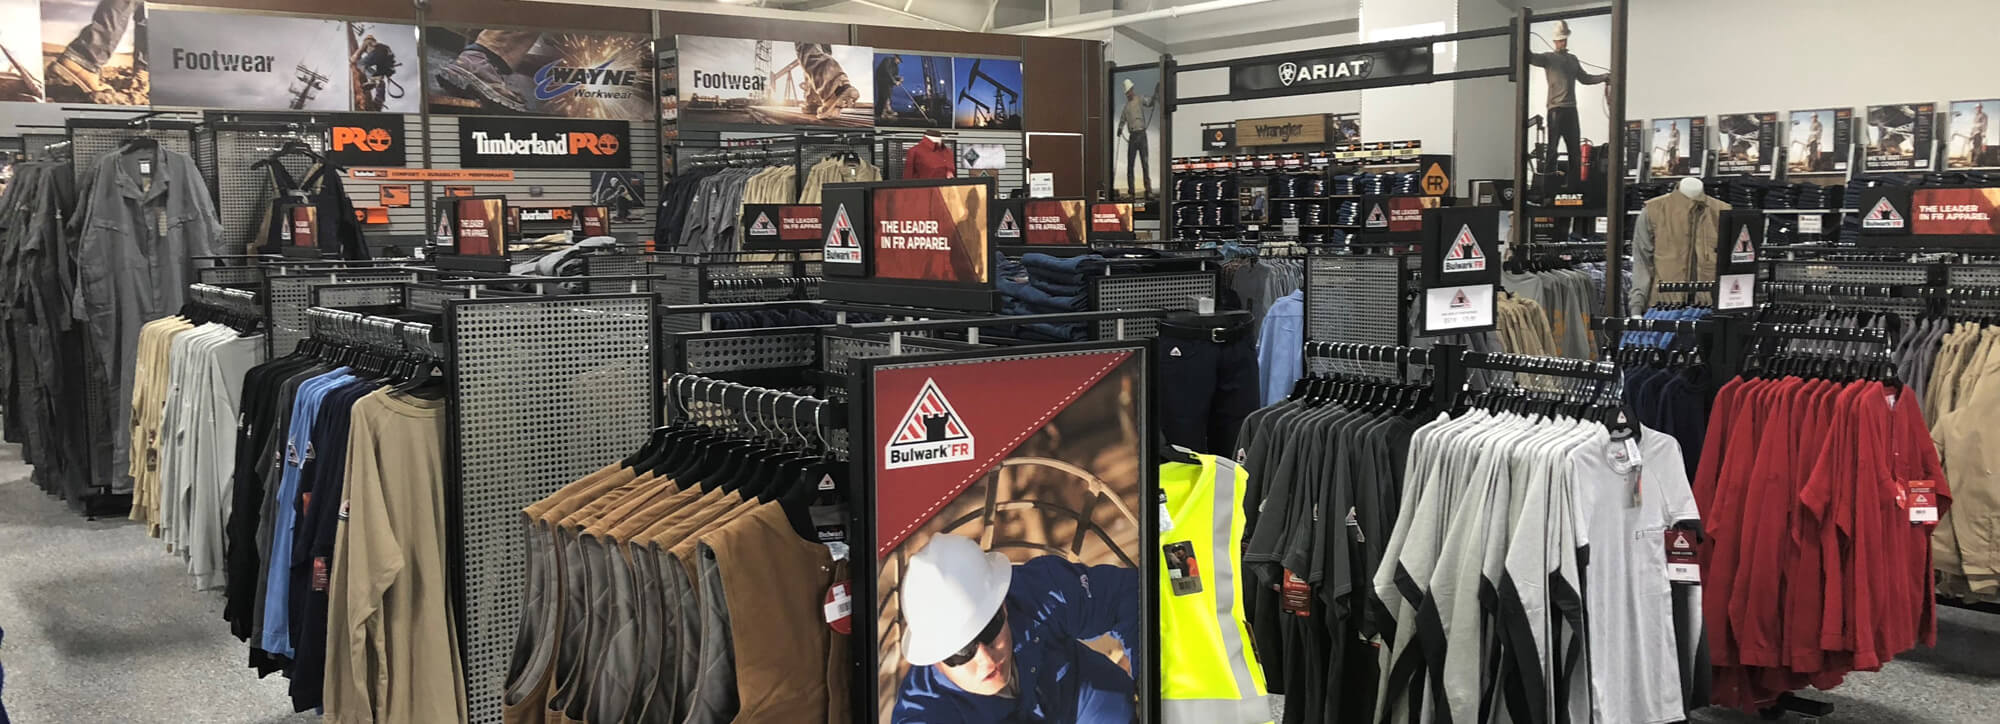 FR Clothing, Work Boot, and PPE Retail Stores | Wayne Workwear